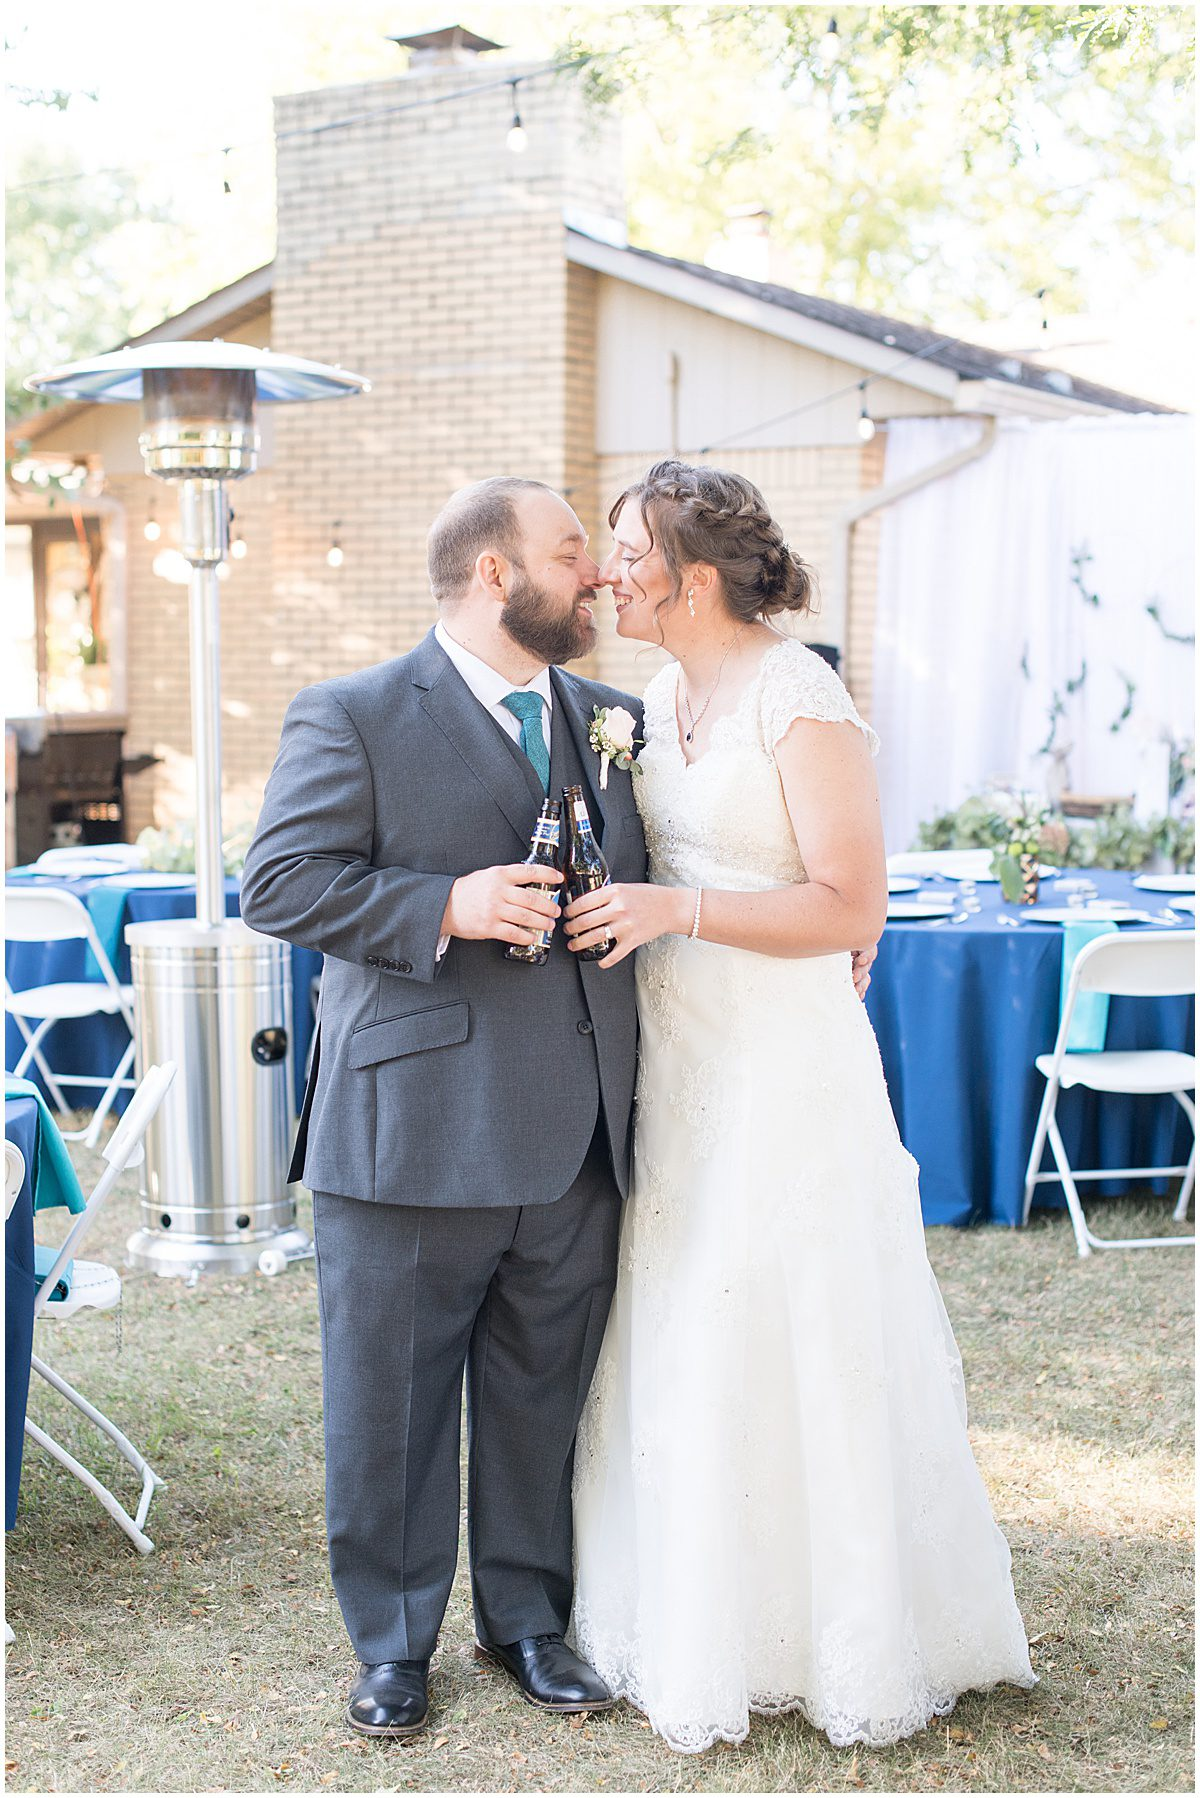 Reception photos for intimate wedding at Holliday Park in Indianapolis